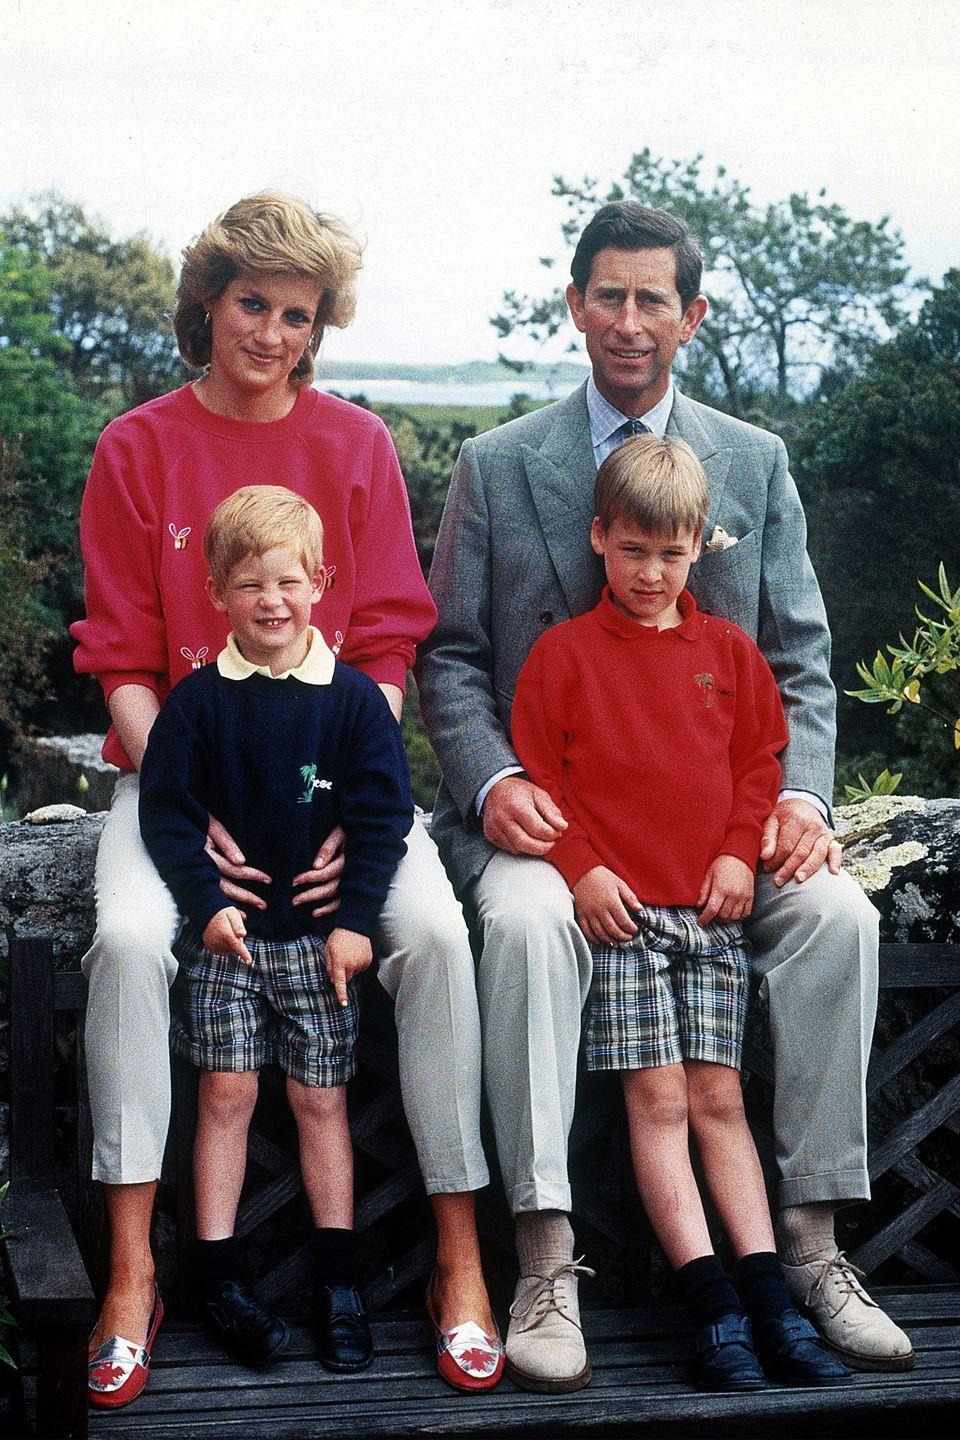 <p>The royal family poses together for a photo. </p>